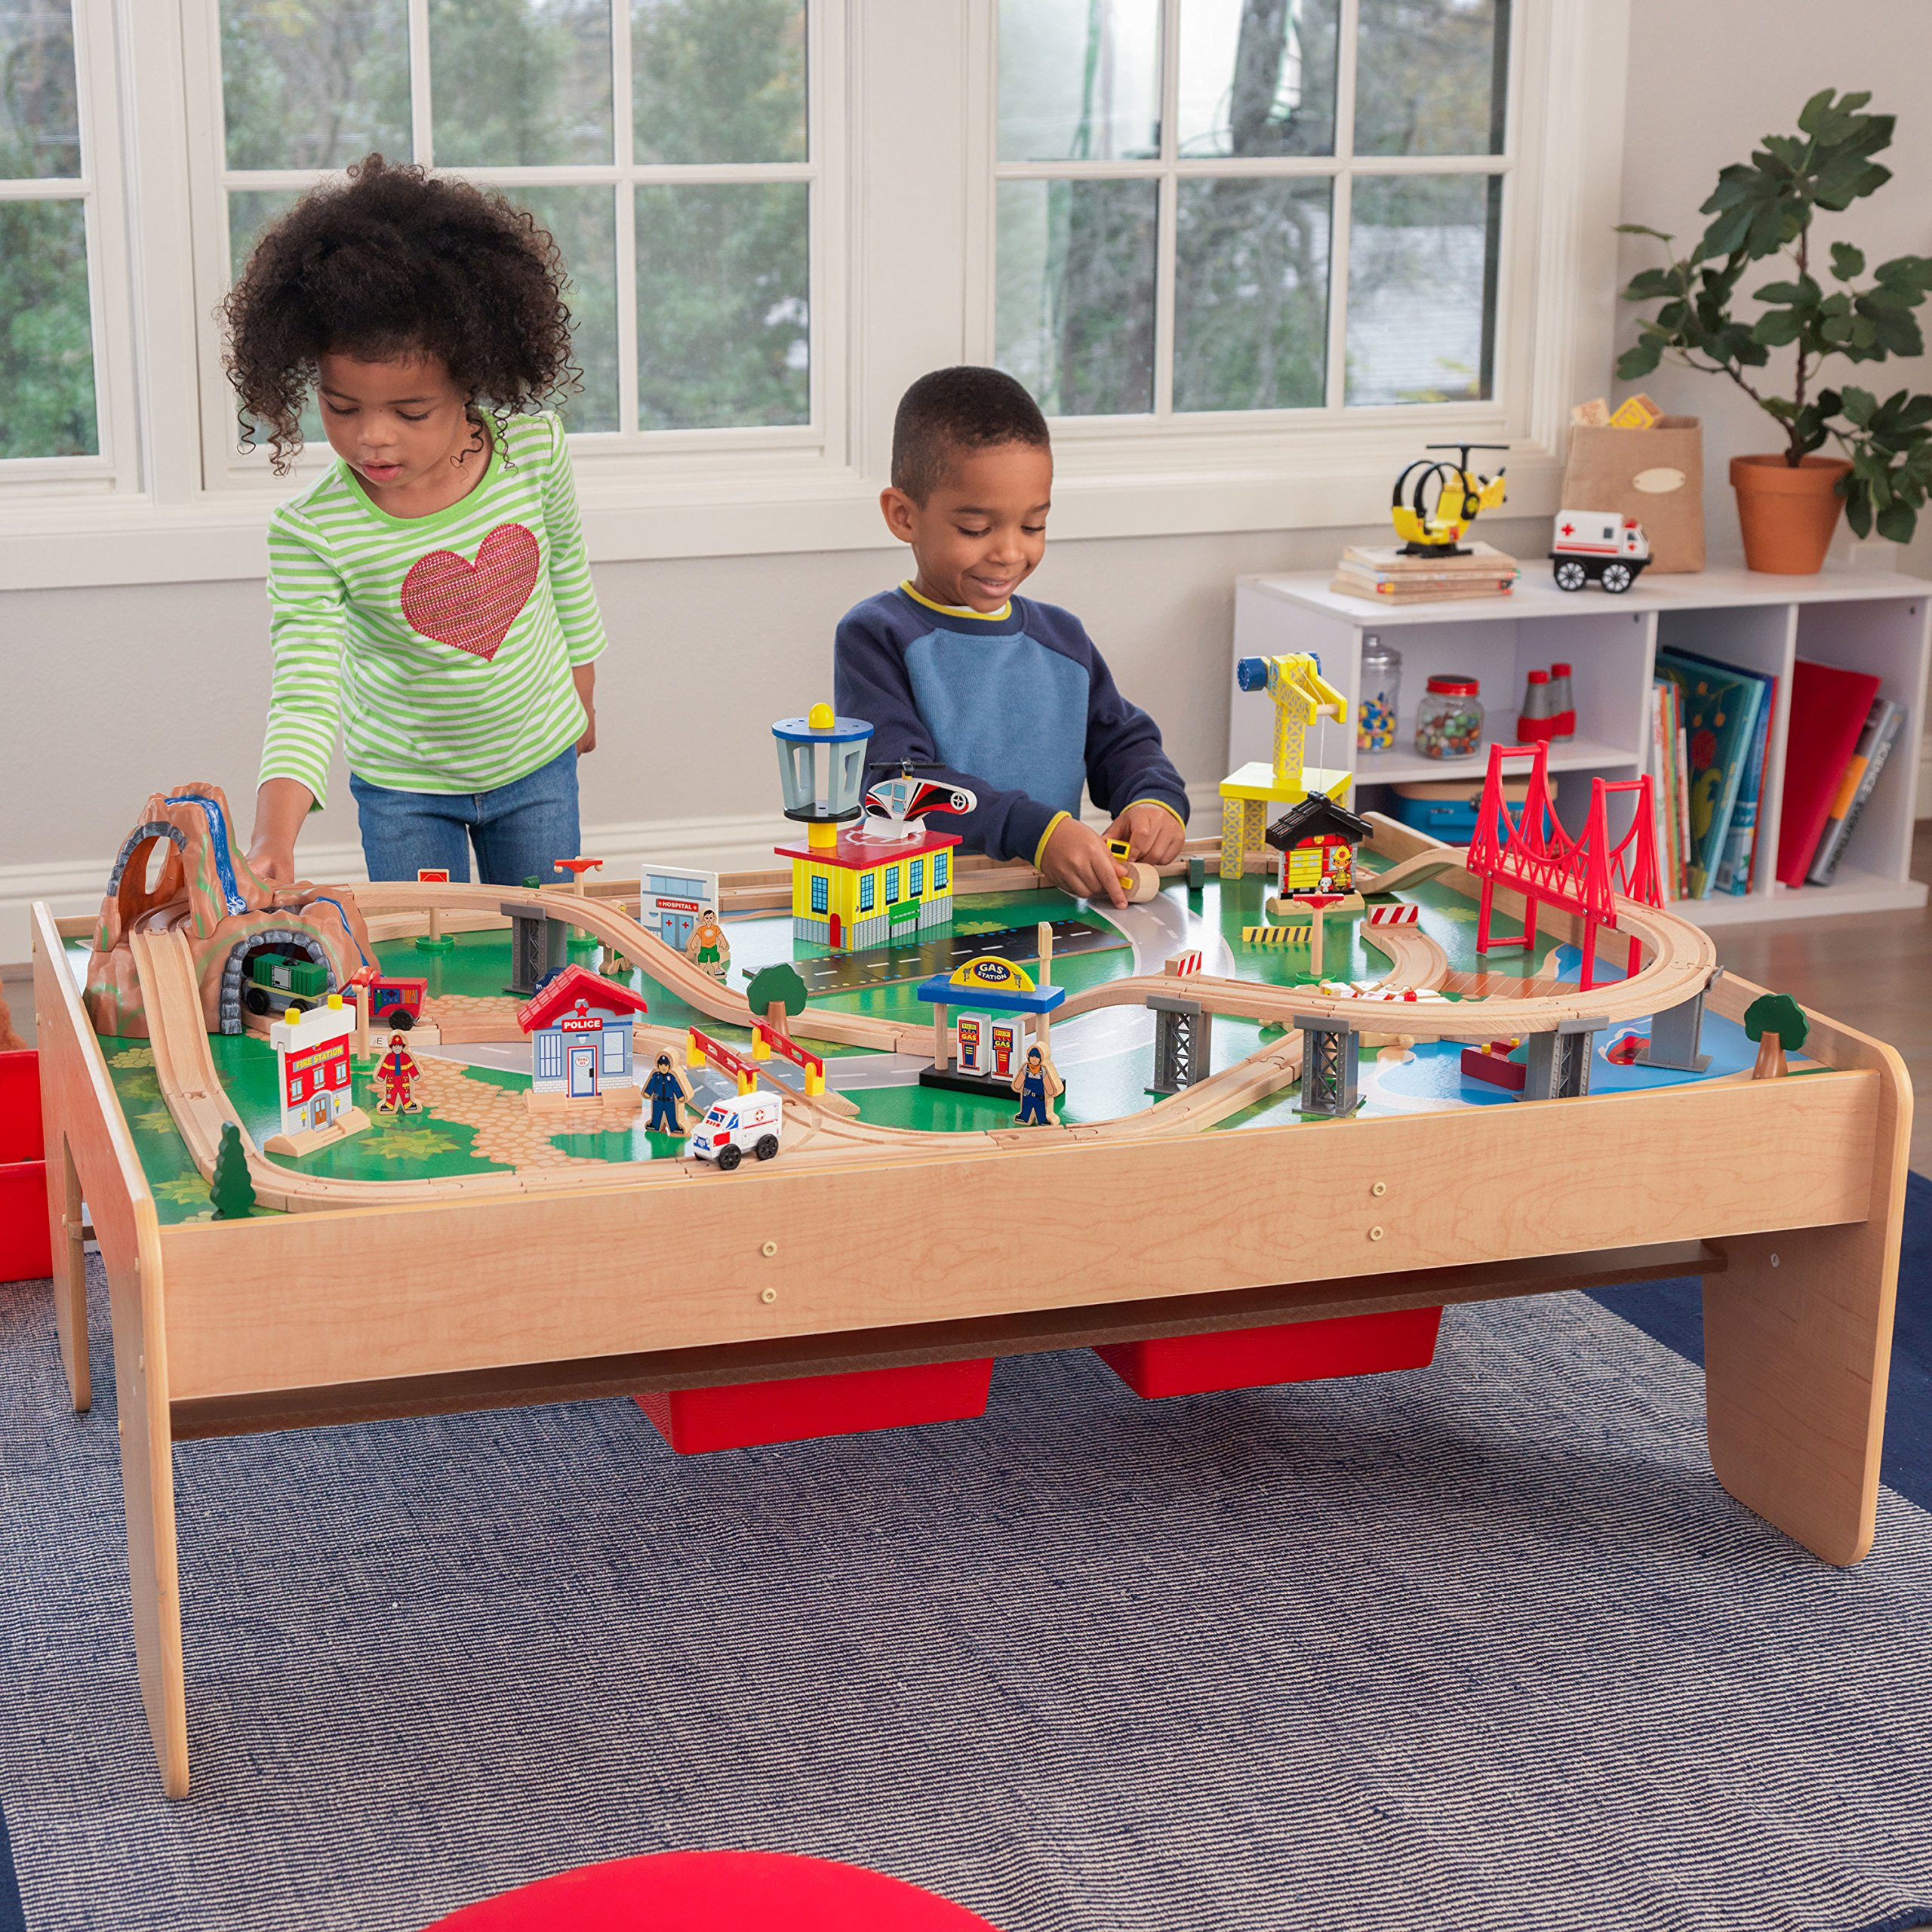 KidKraft Waterfall Mountain Train Set and Table by KidKraft (Image #4)